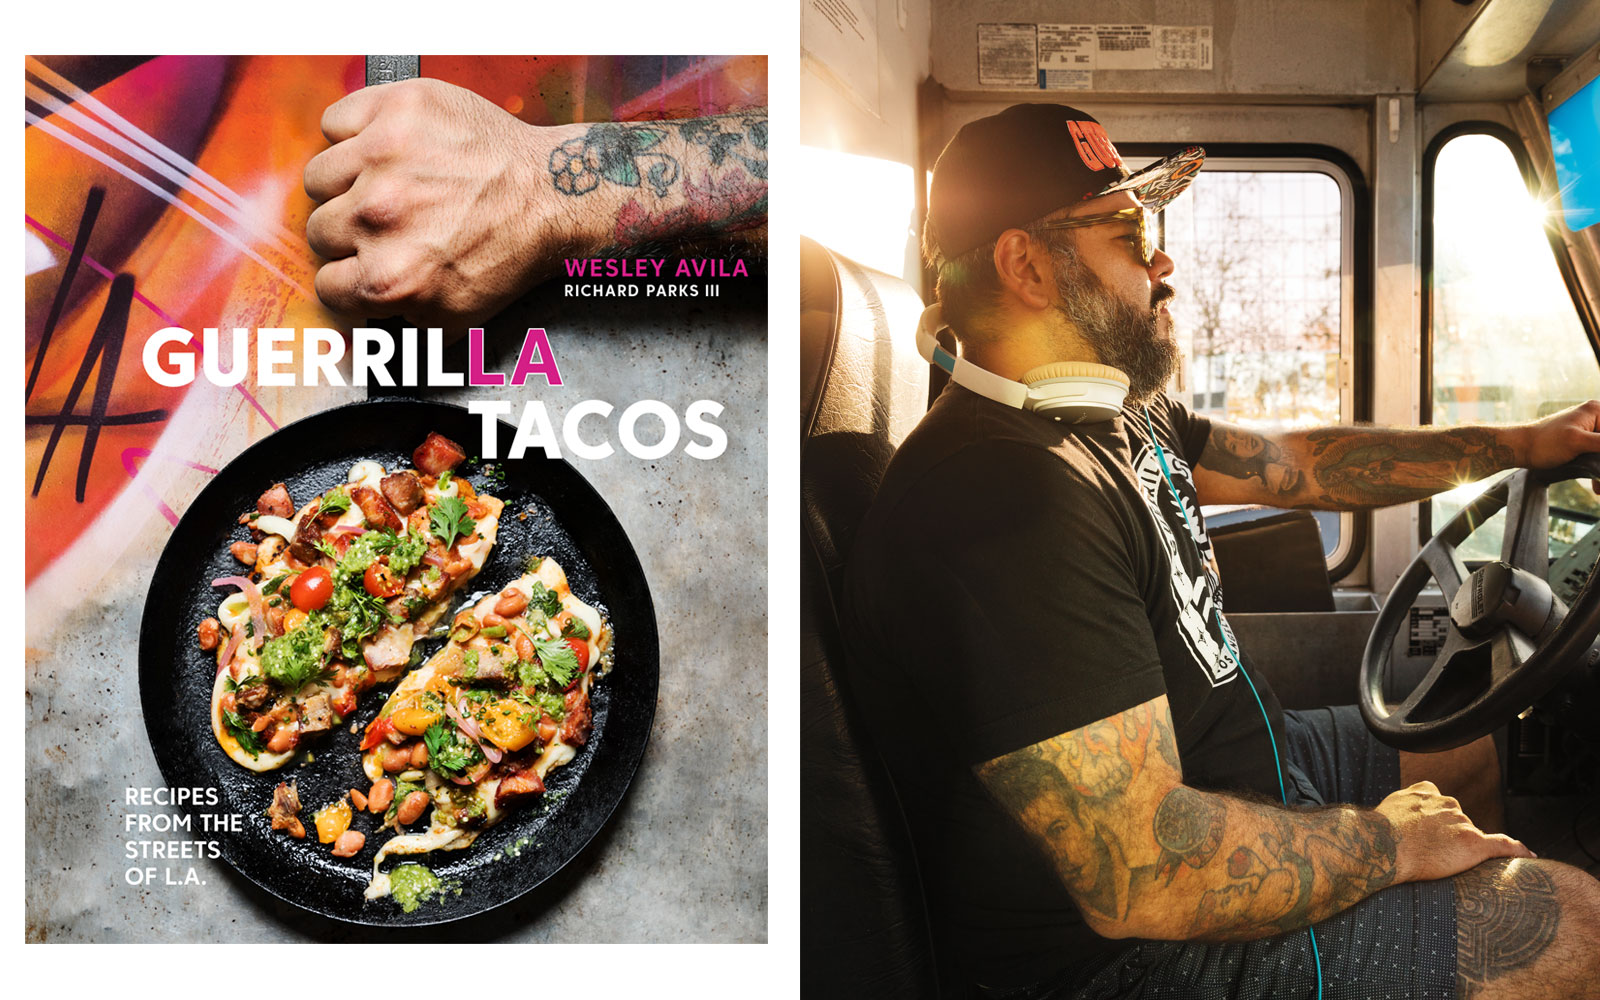 Guerilla Tacos Cookbook